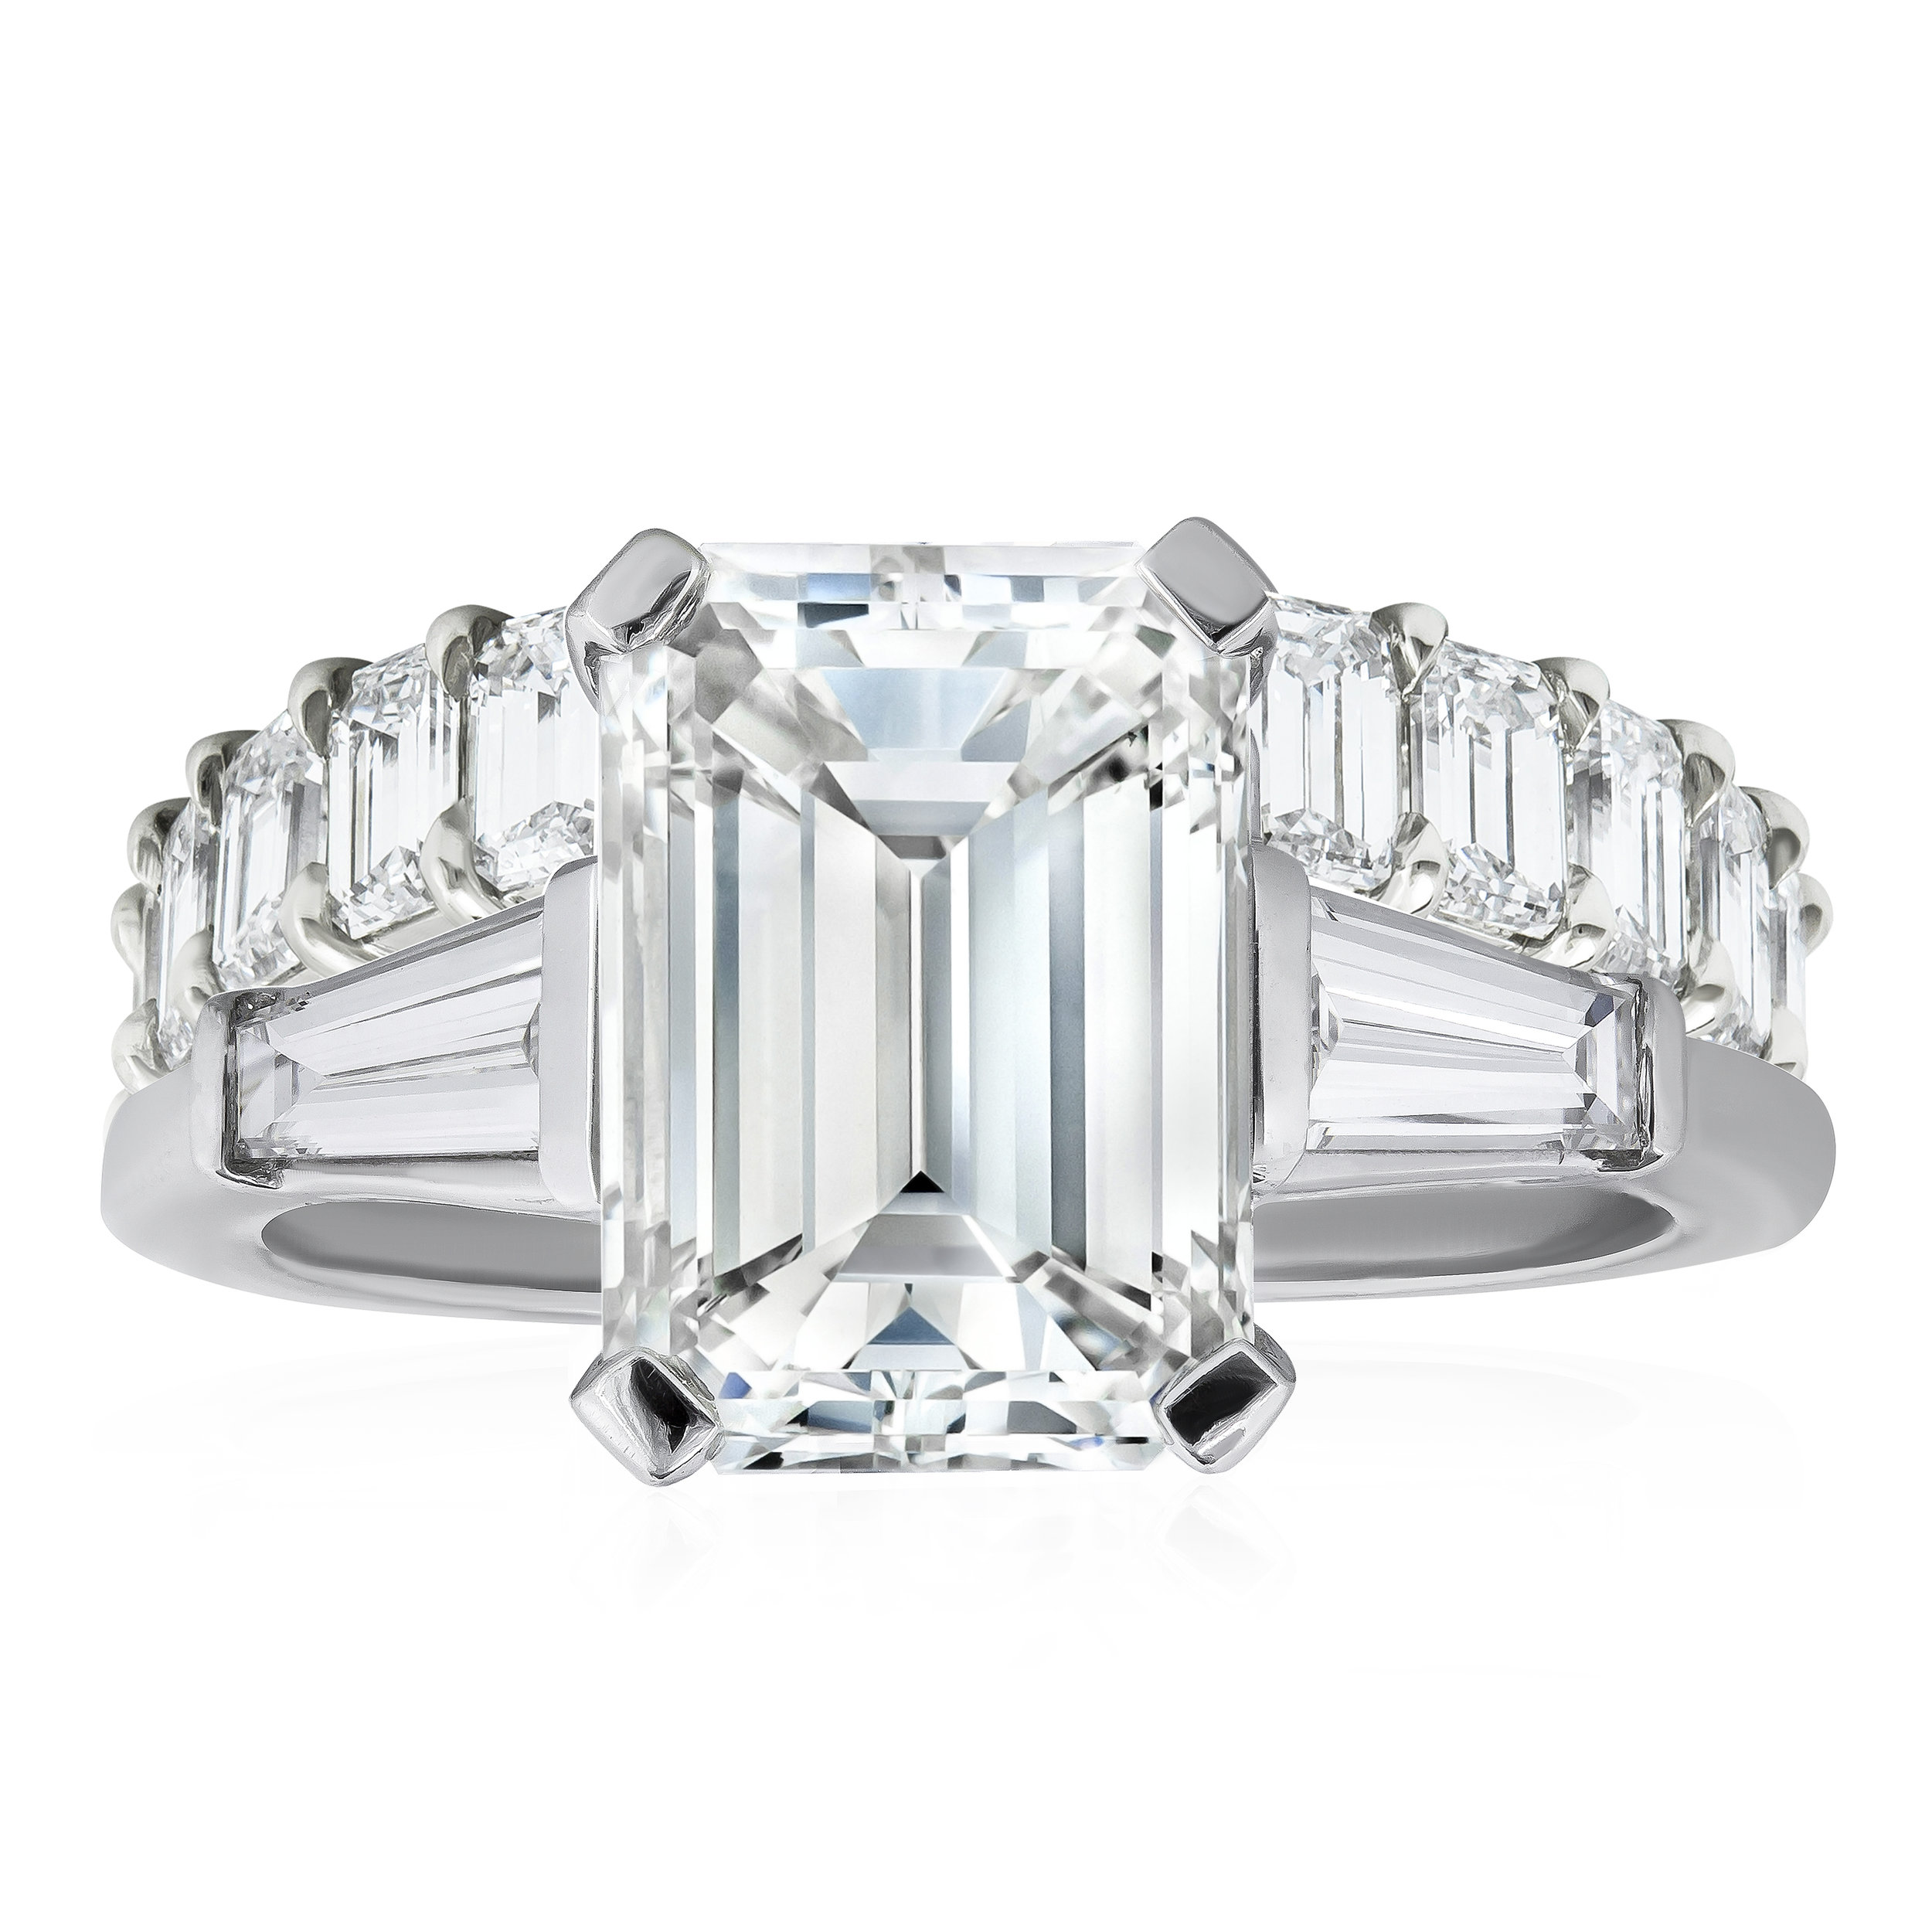 Matching A Wedding Band To Your Engagement Ring Roman Malakov